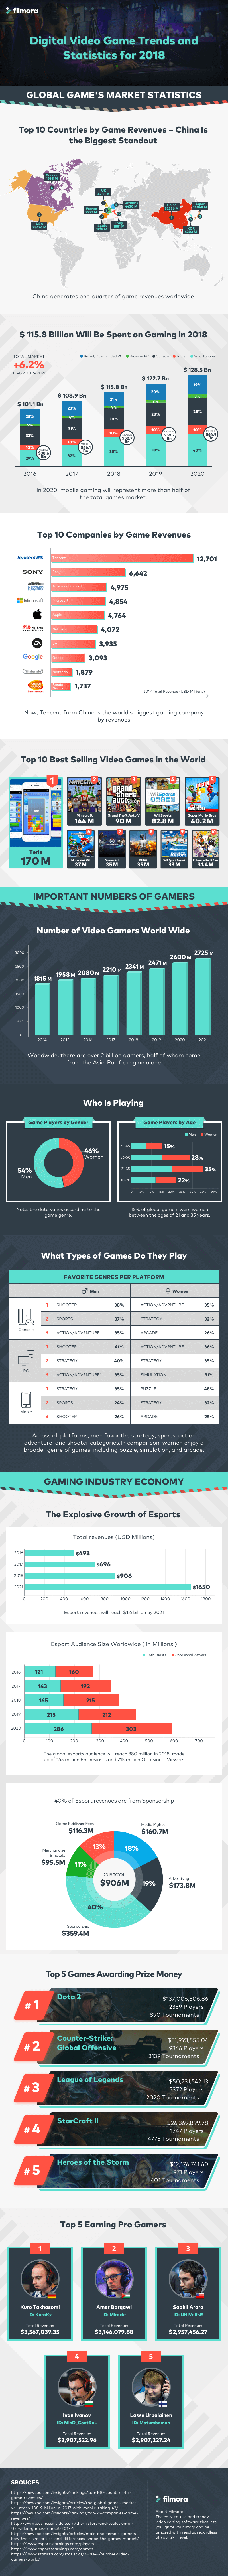 video-game-trends-and-stats.png